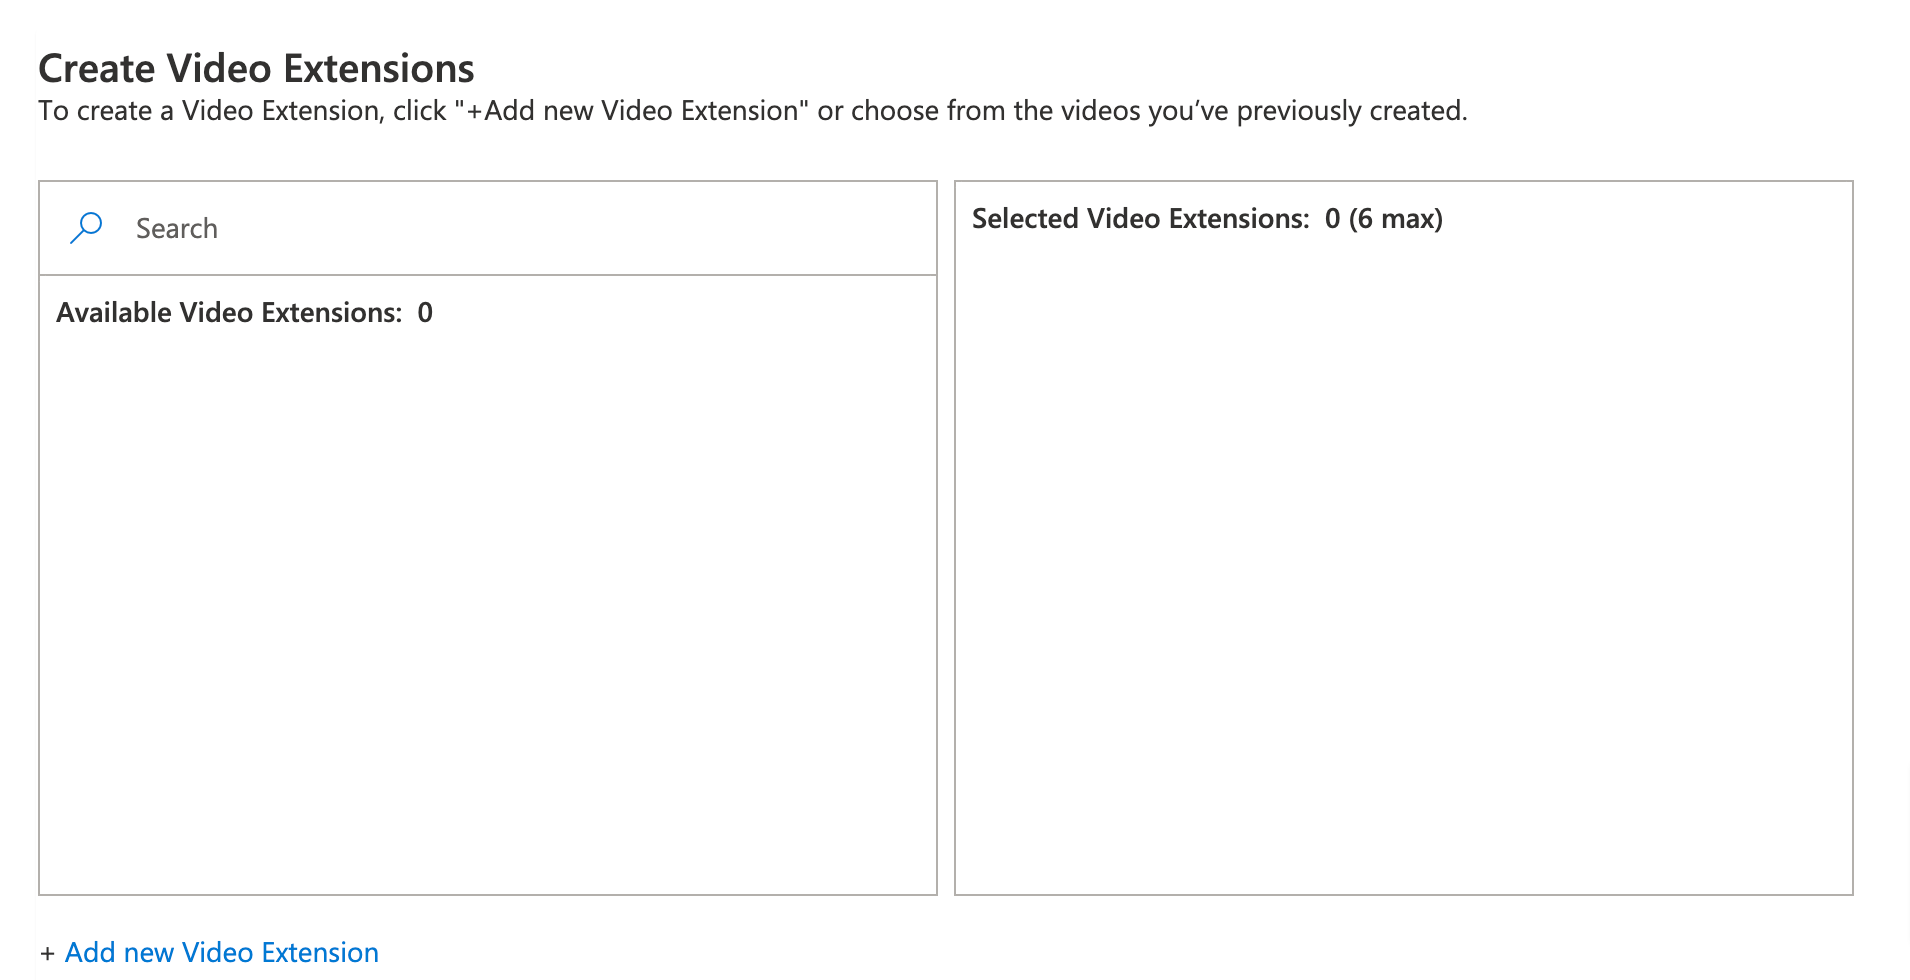 microsoft ads create video extensions